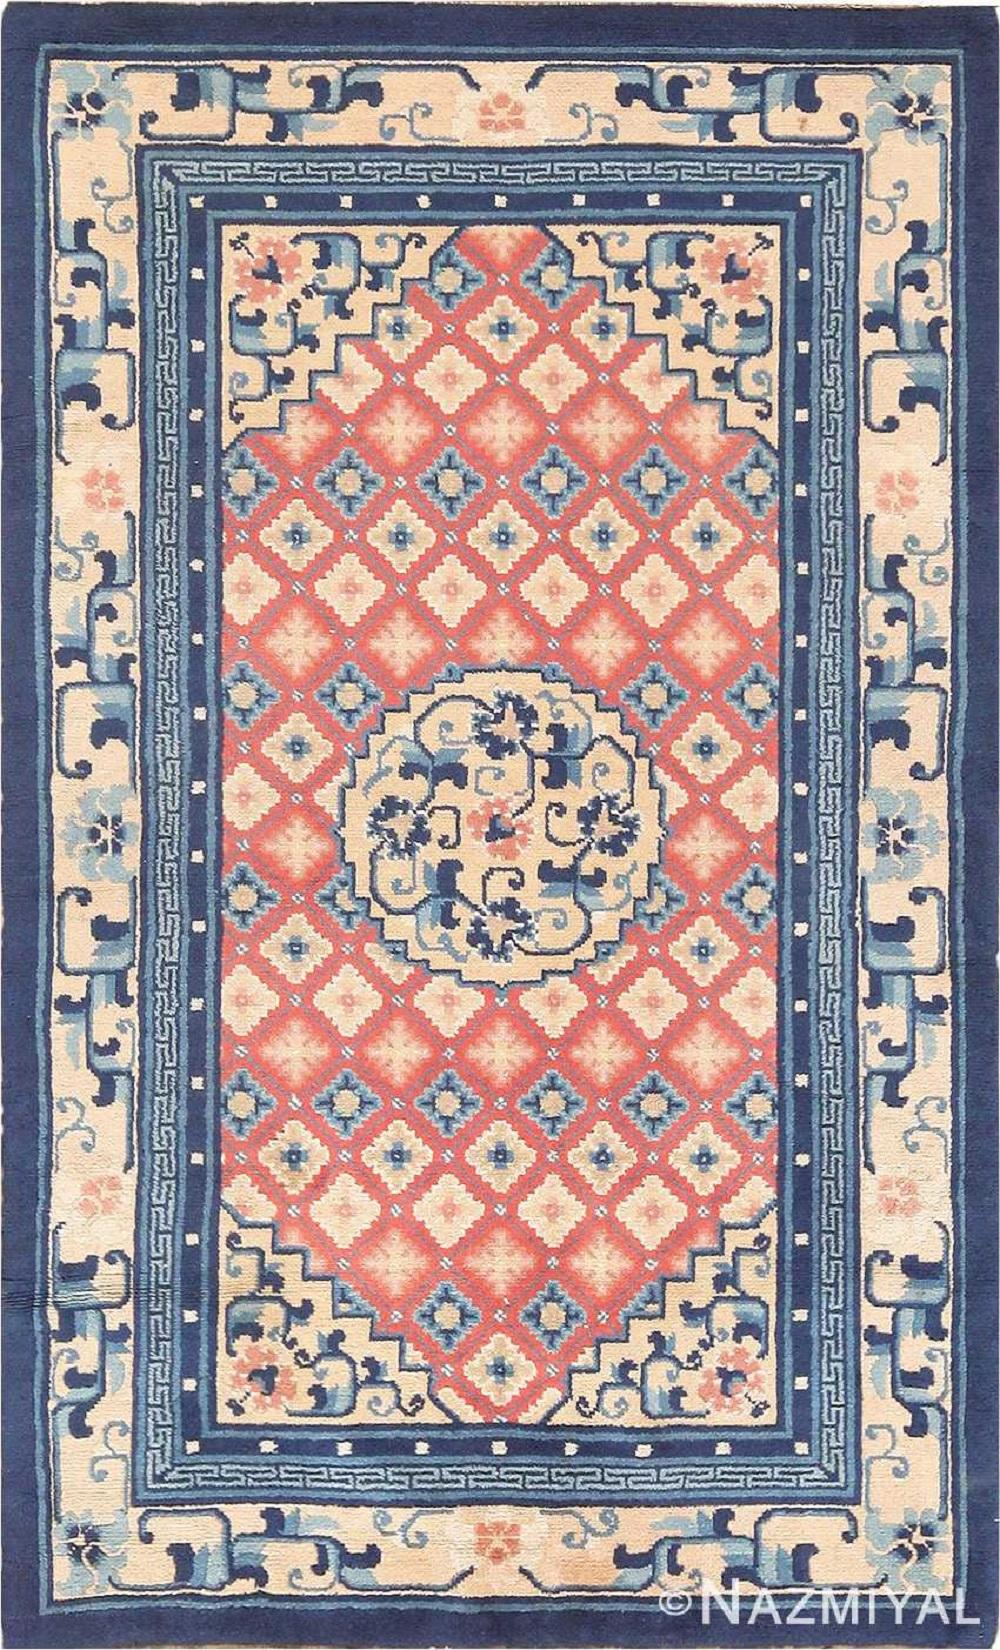 ANTIQUE CHINESE RUG. 5 ft x 3 ft (1.52 m x 0.91 m).